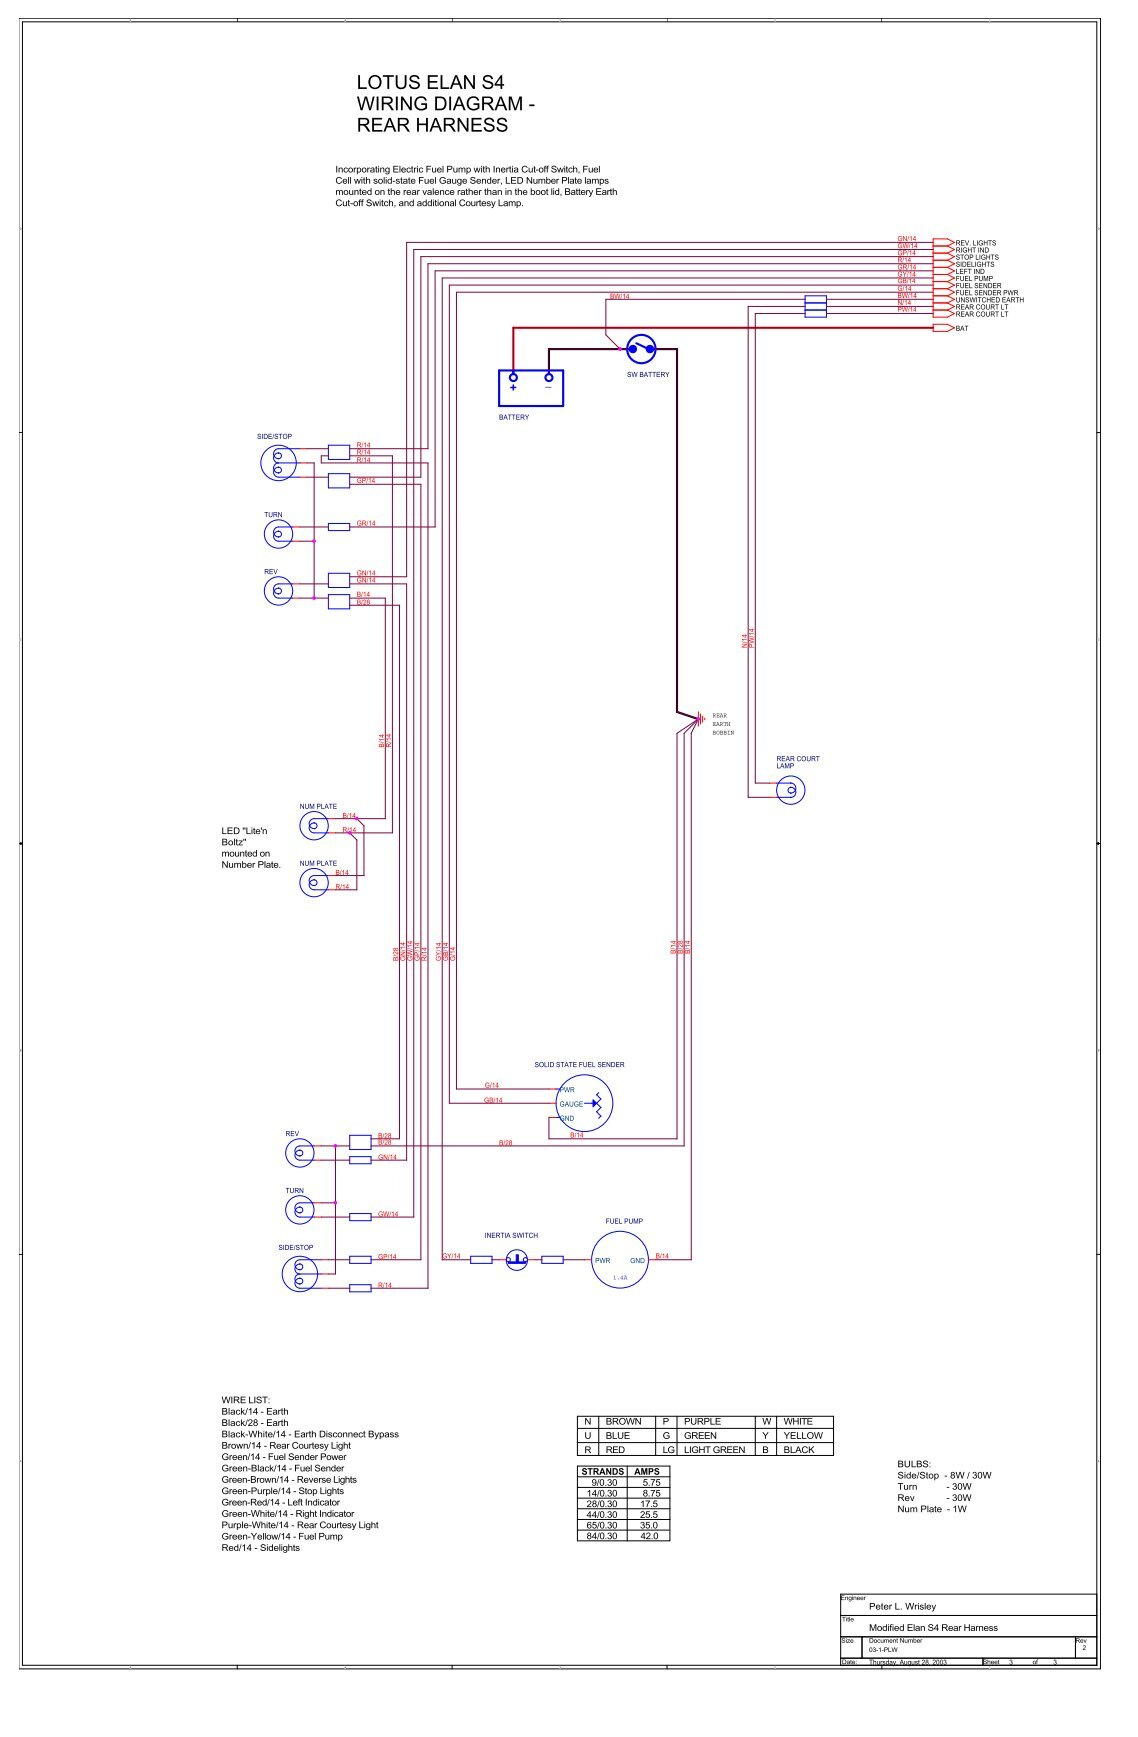 hight resolution of daewoo nubira electrical diagram mazda cx 9 stereo wiring diagram